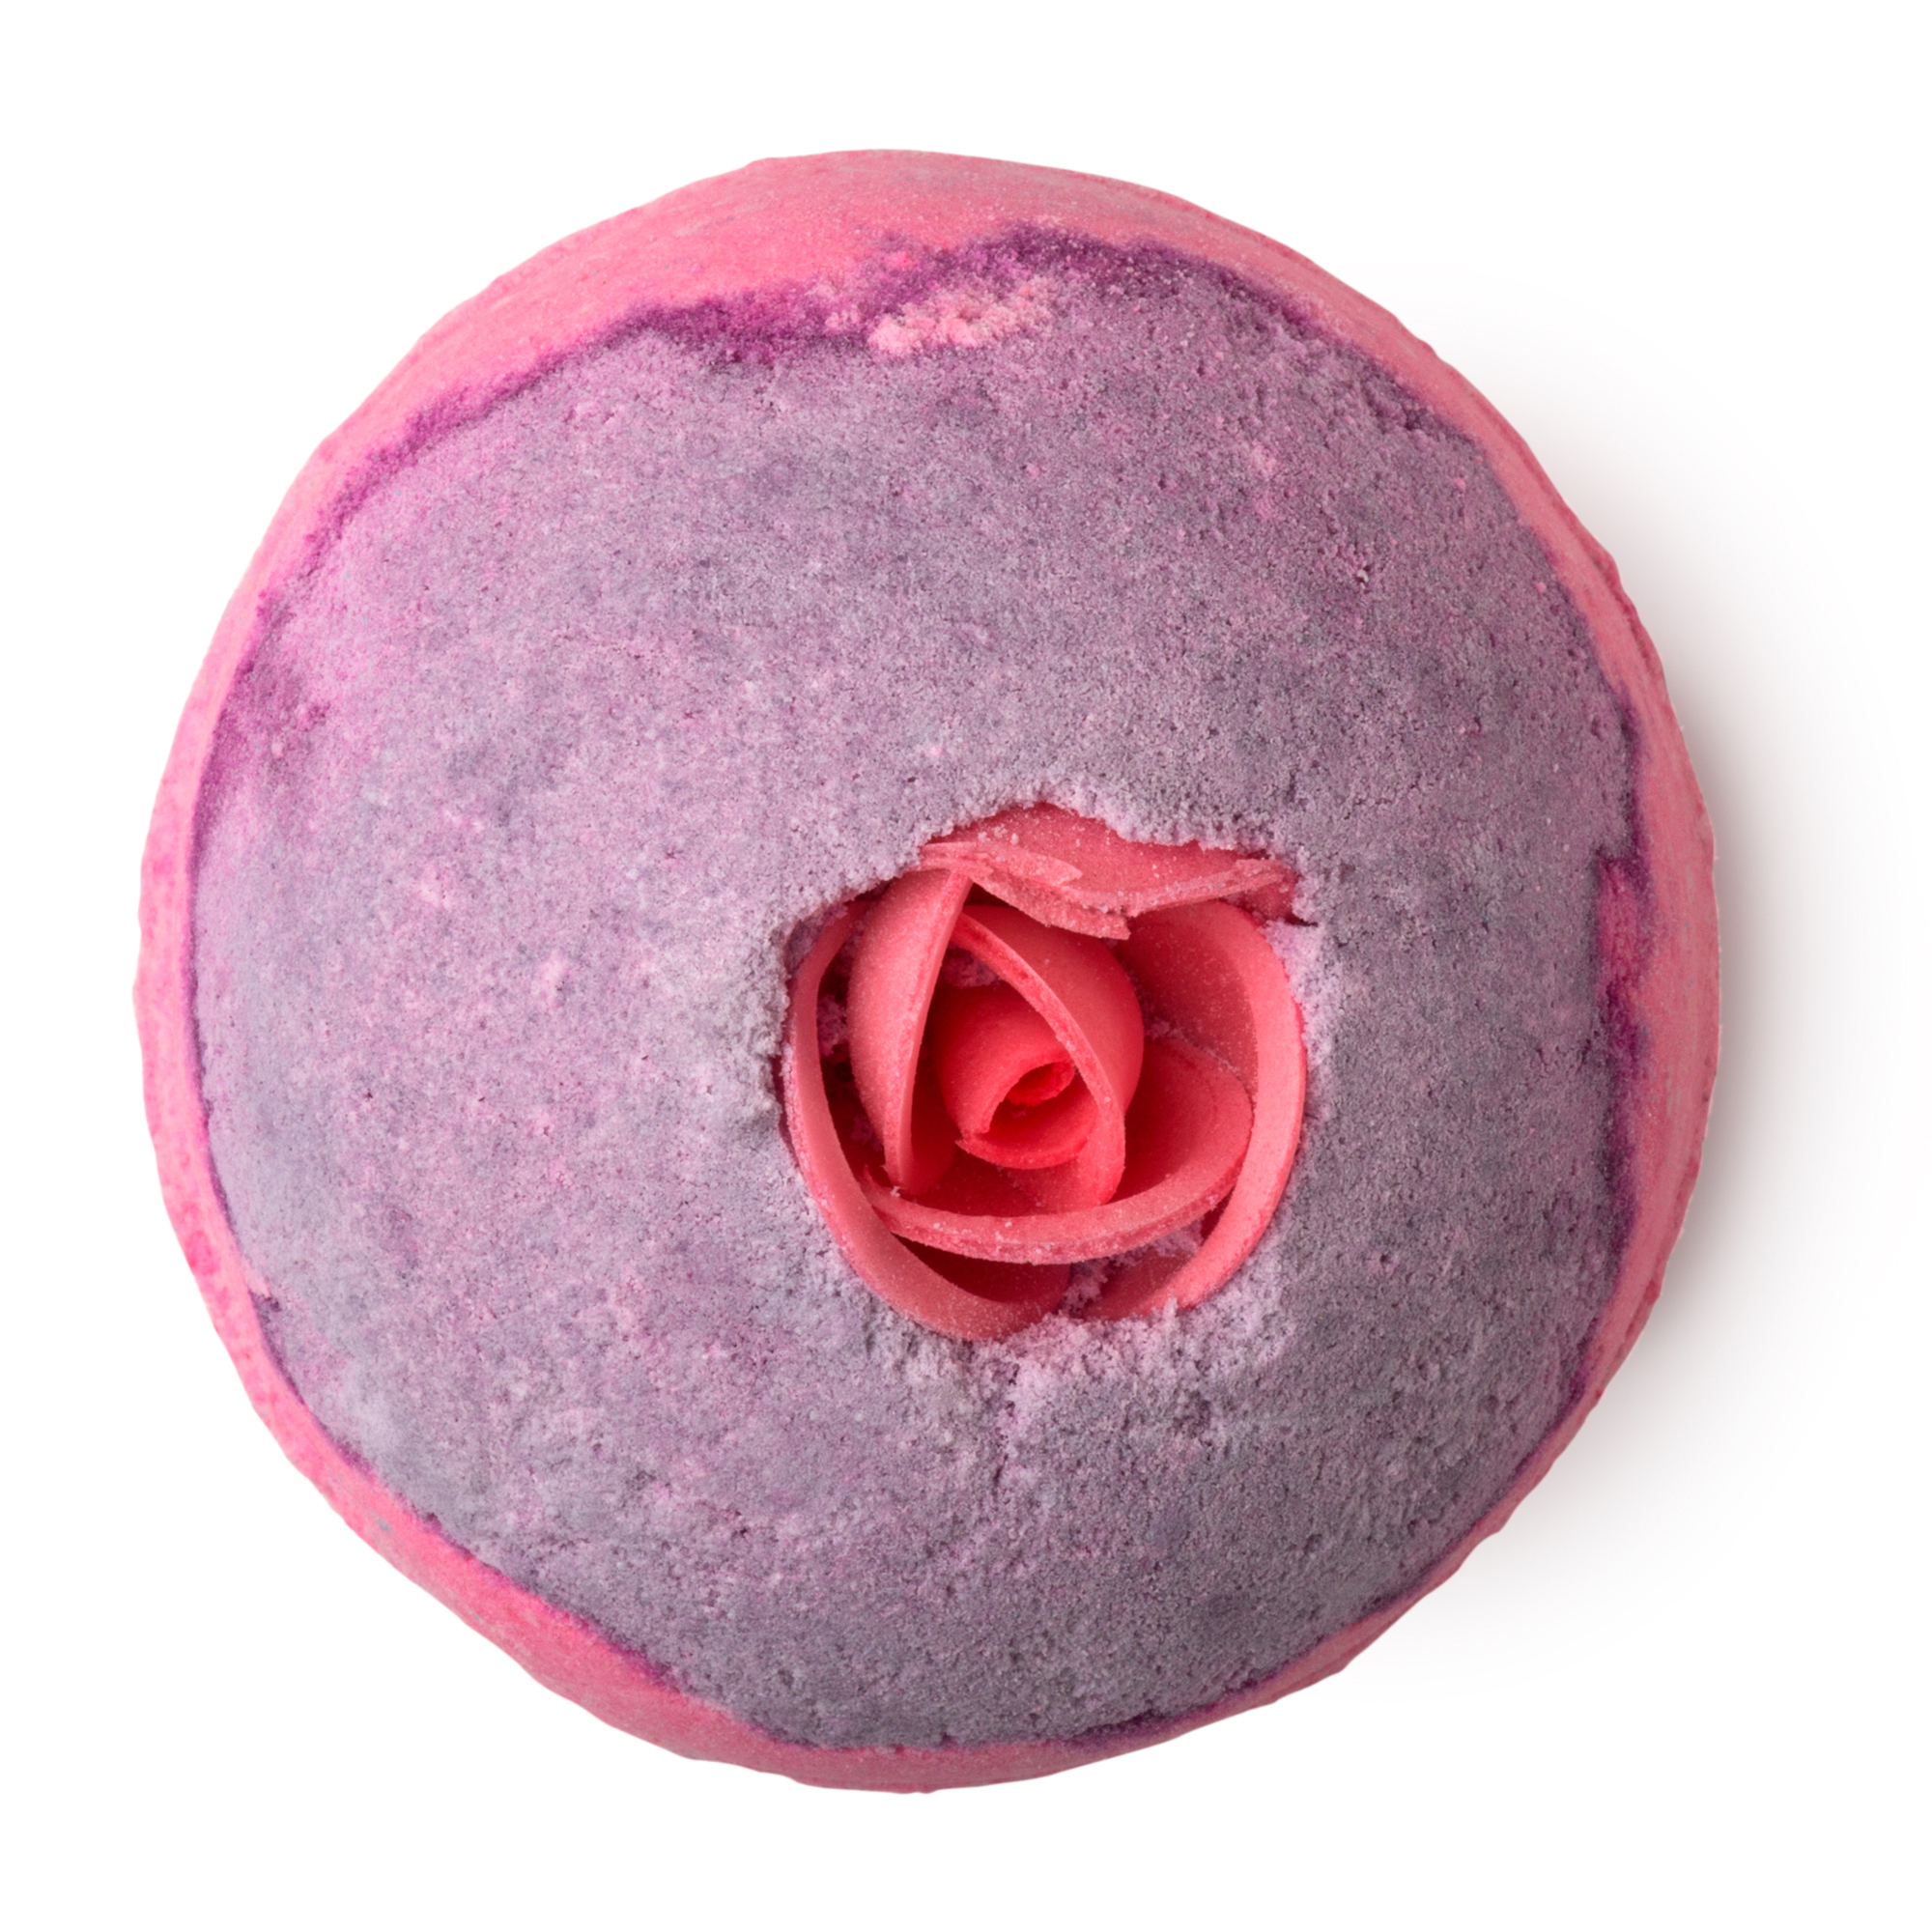 Sex Bomb Bath Bombs Lush Cosmetics Australia